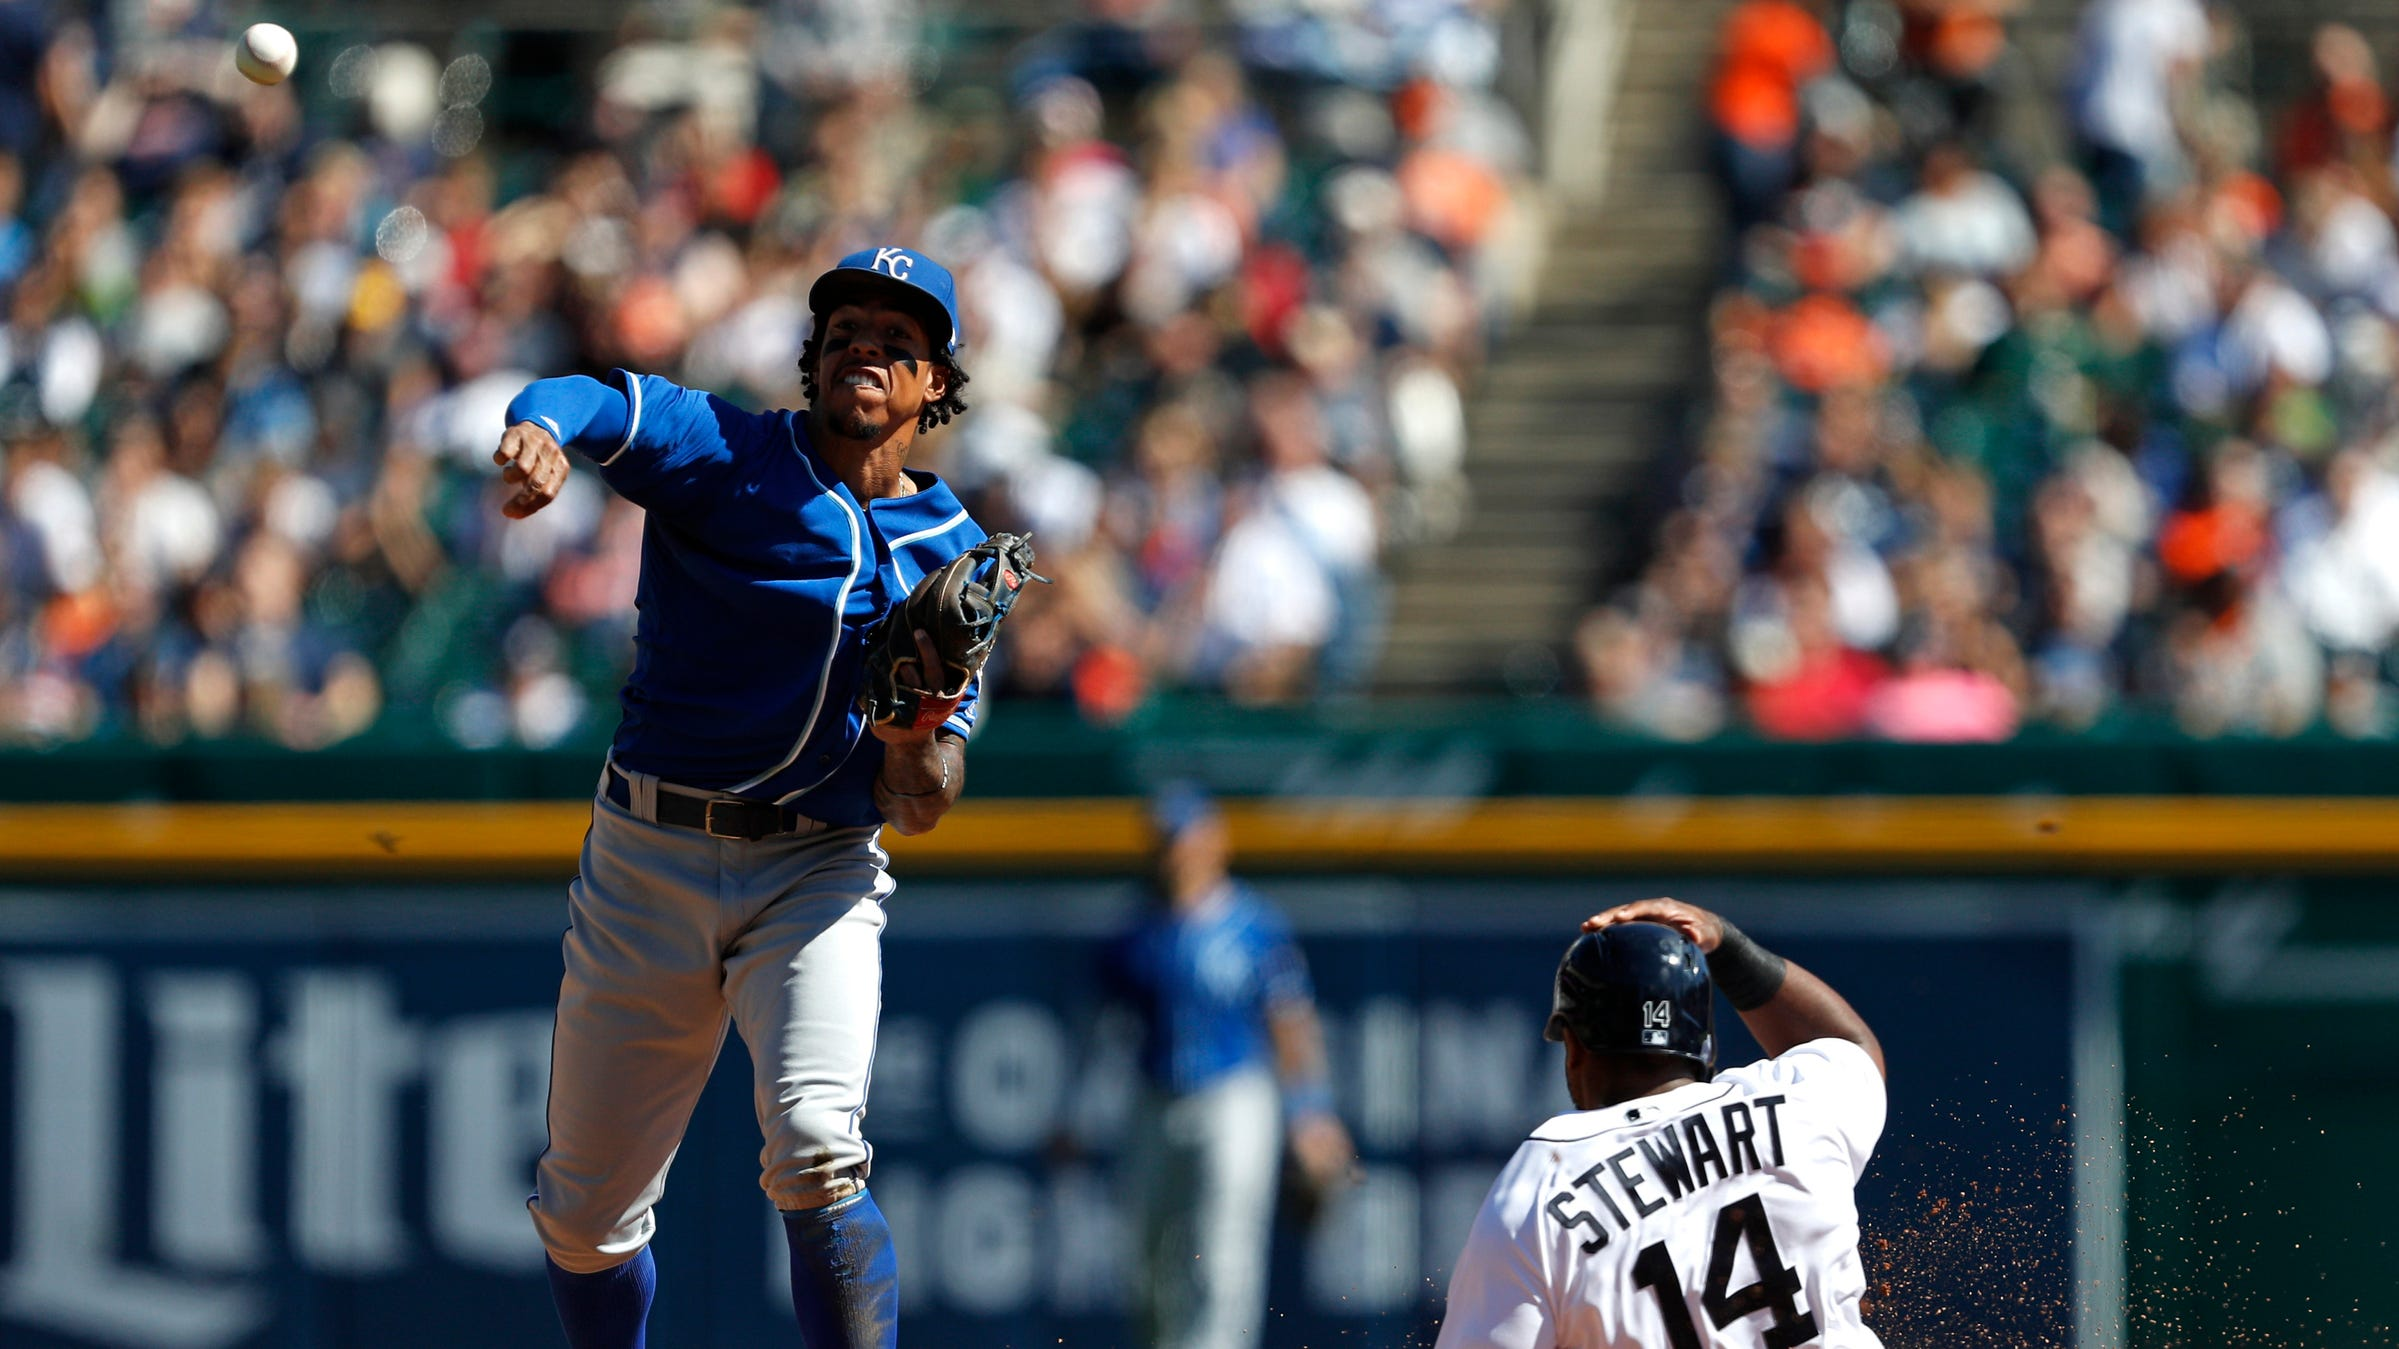 Detroit Tigers can't find much offense in home-finale loss to Royals